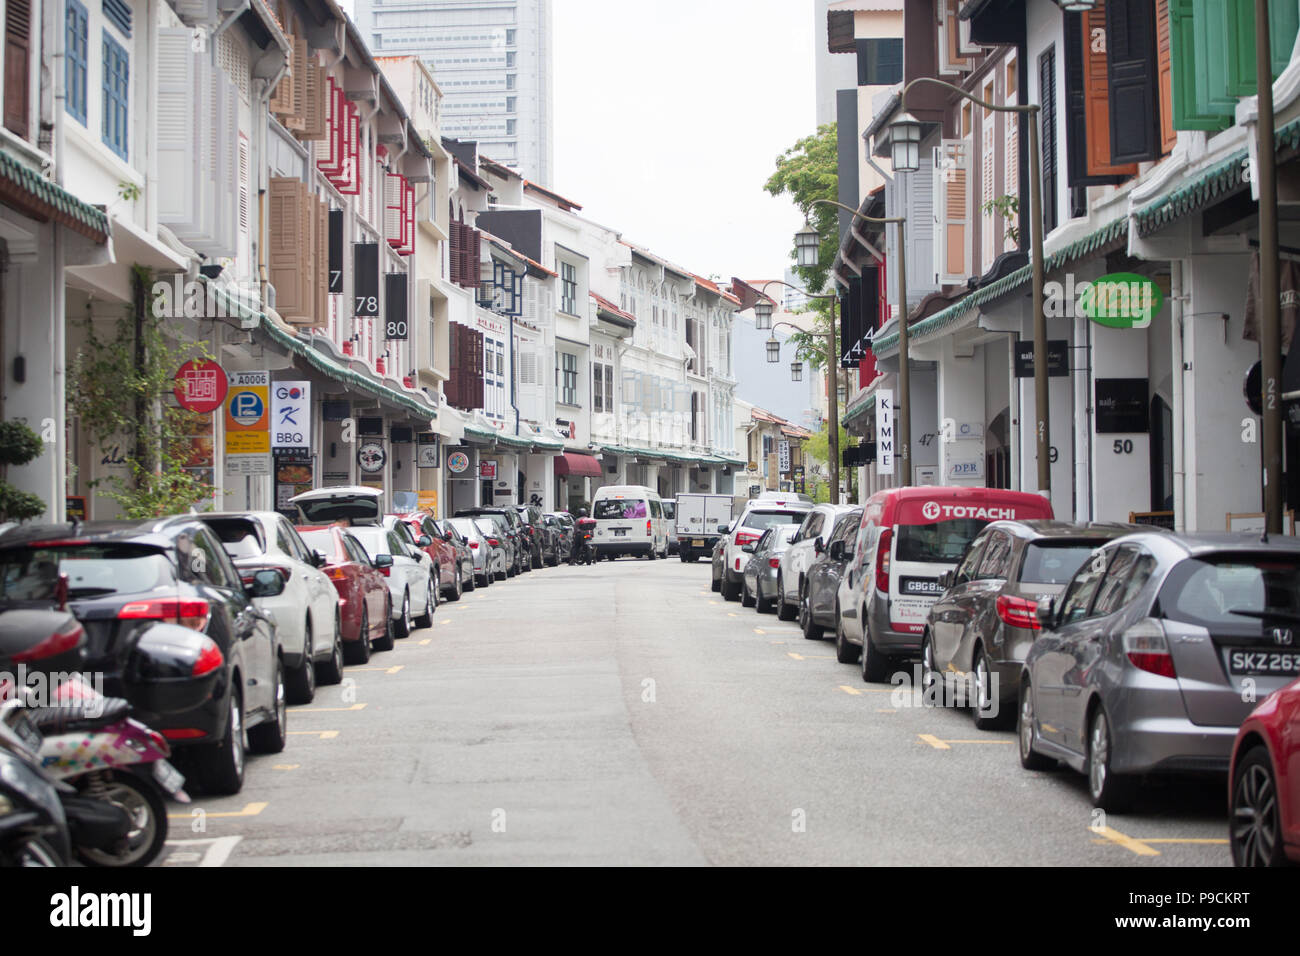 Quiet street with shophouses on each side. Singapore - Stock Image